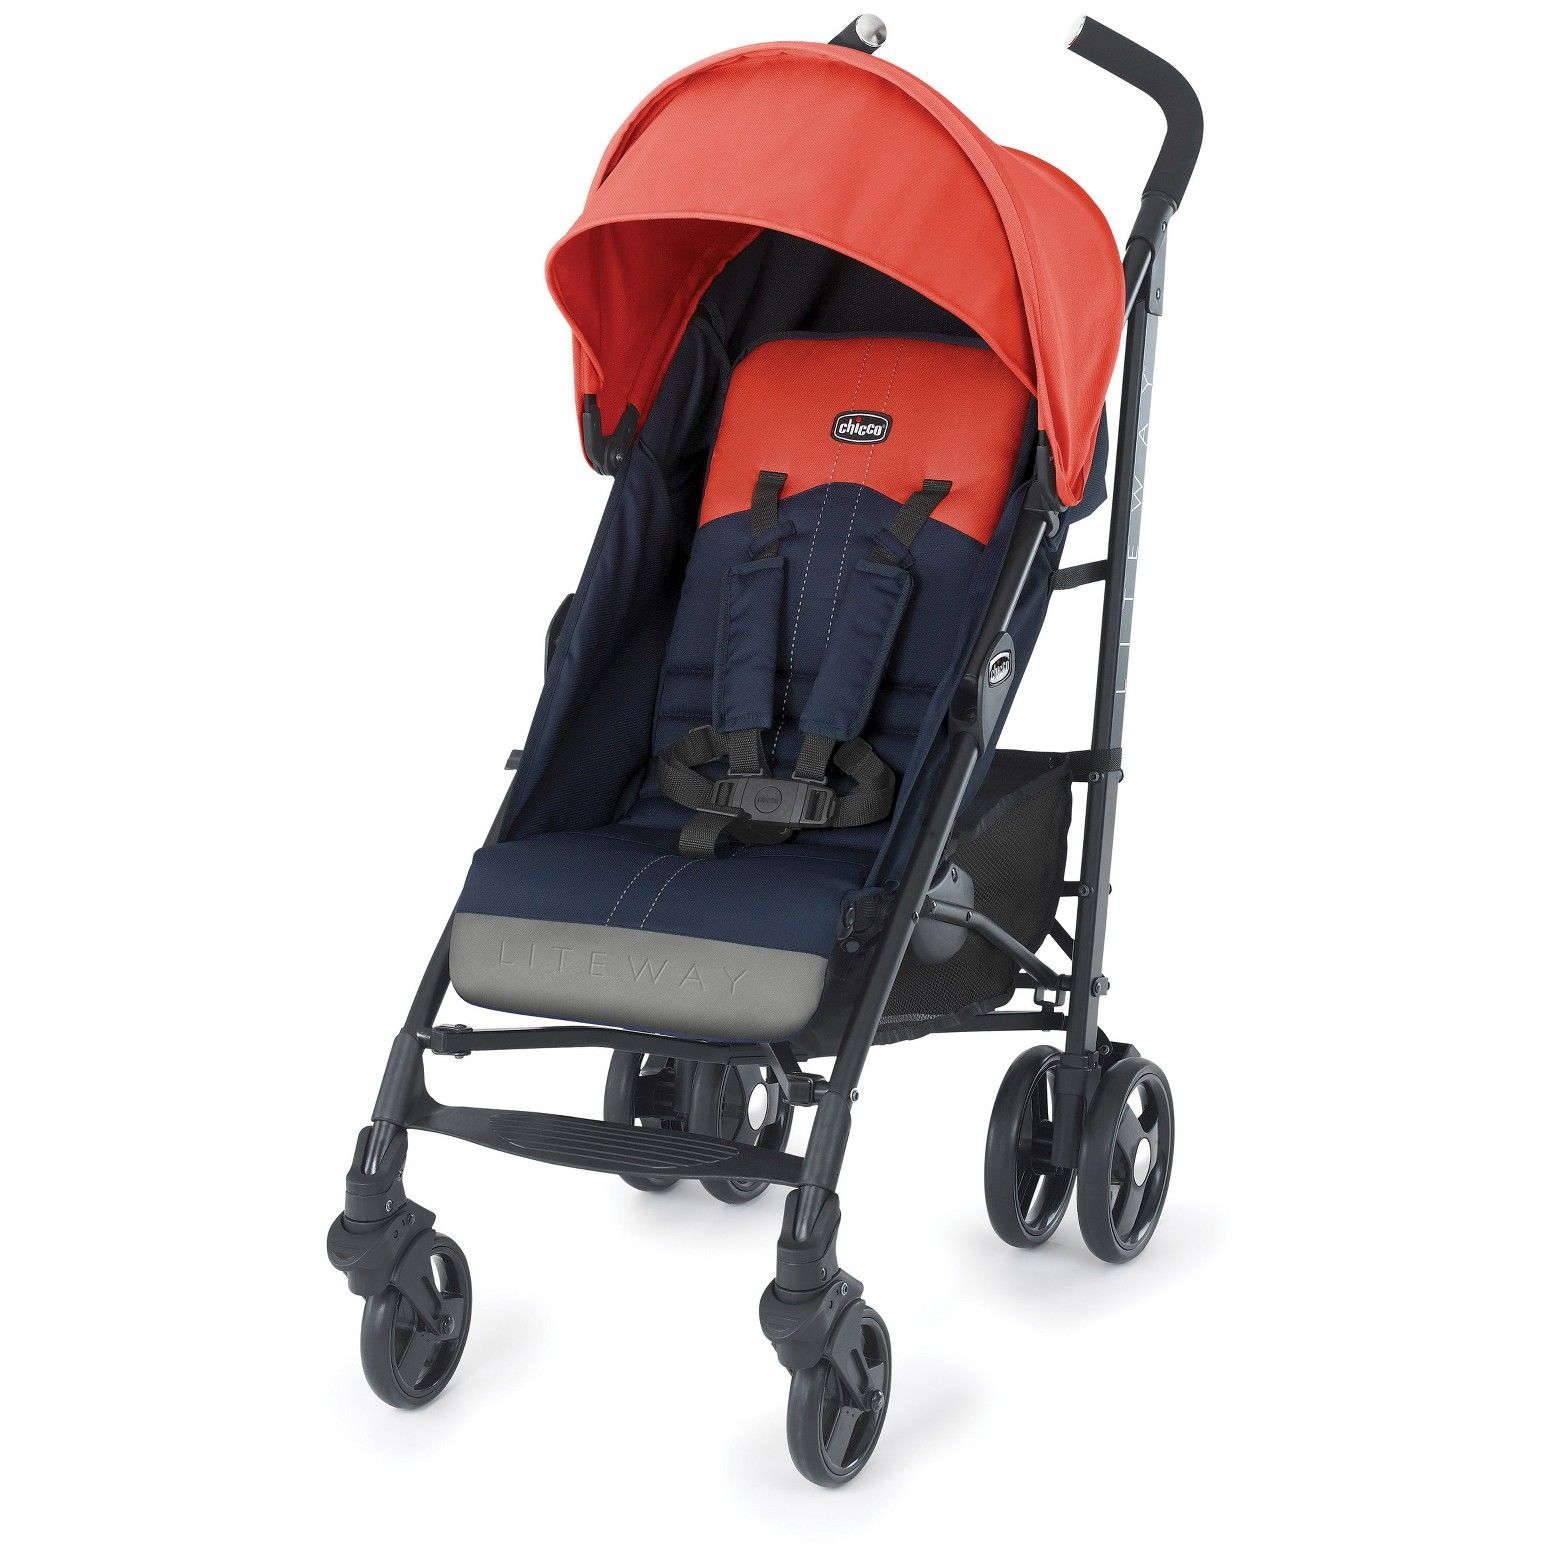 Chicco Lite Way Stroller Chicco liteway stroller, Chicco